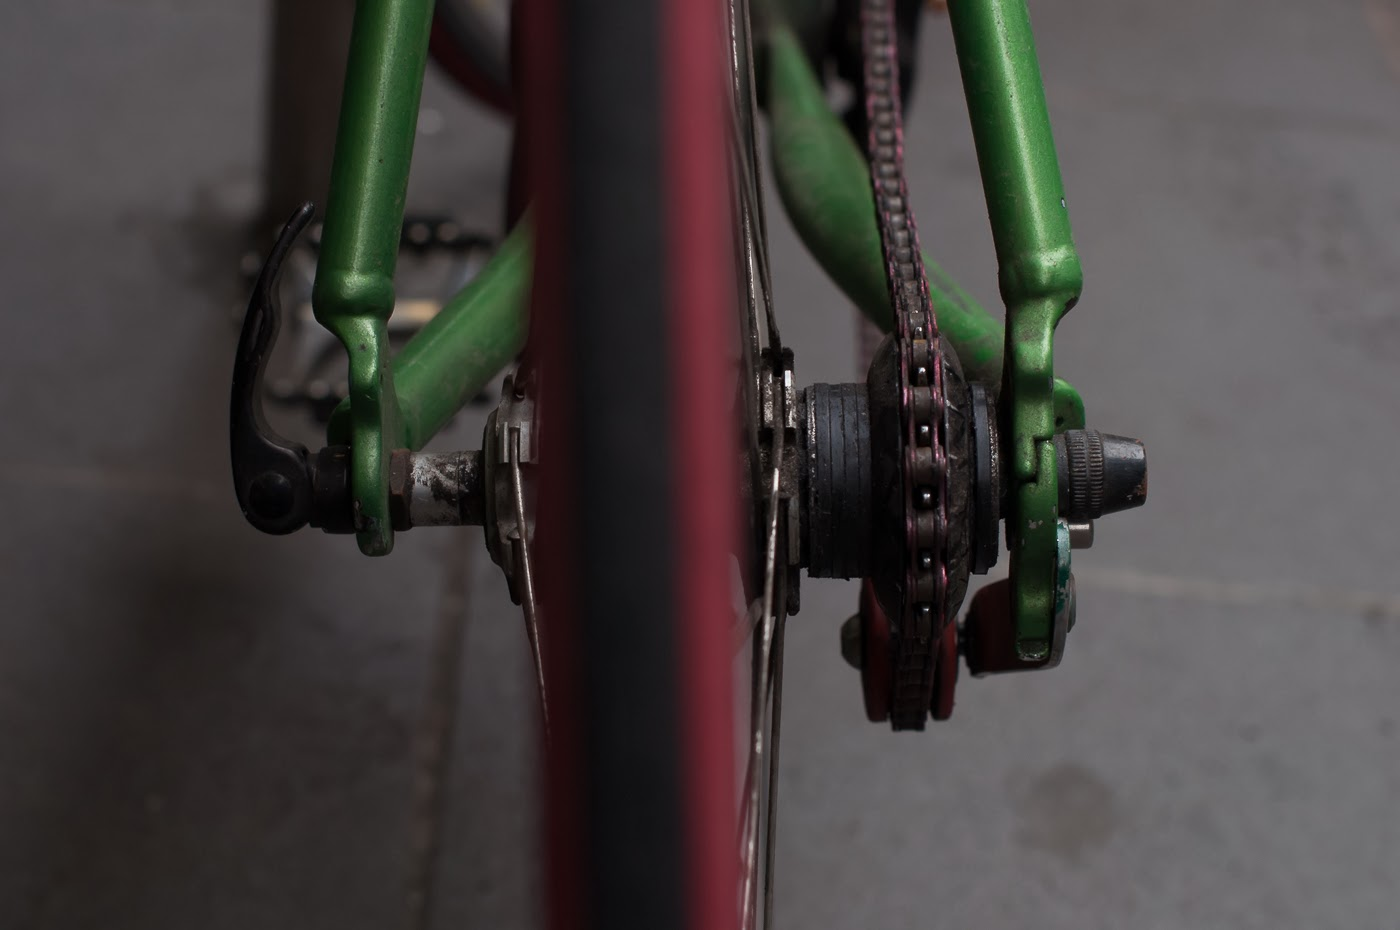 single speed, bike, bicycle, tim macauley, the biketorialist, melbourne, conversion, chain, tensioner road bik, mavic, rear cassette, cassette spacers, spacers